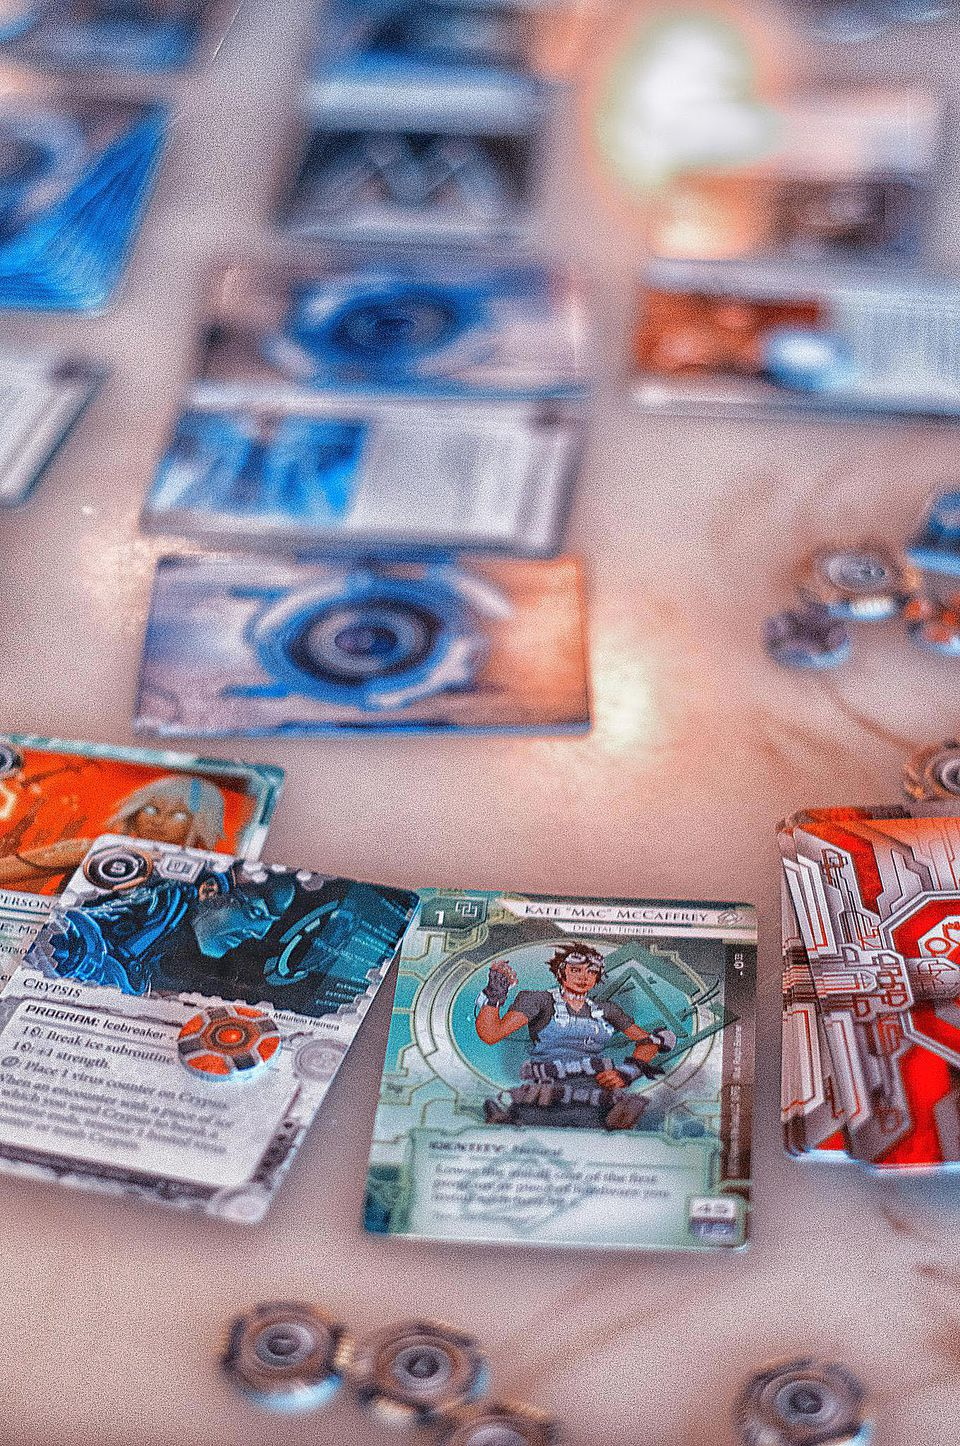 Playing Netrunner